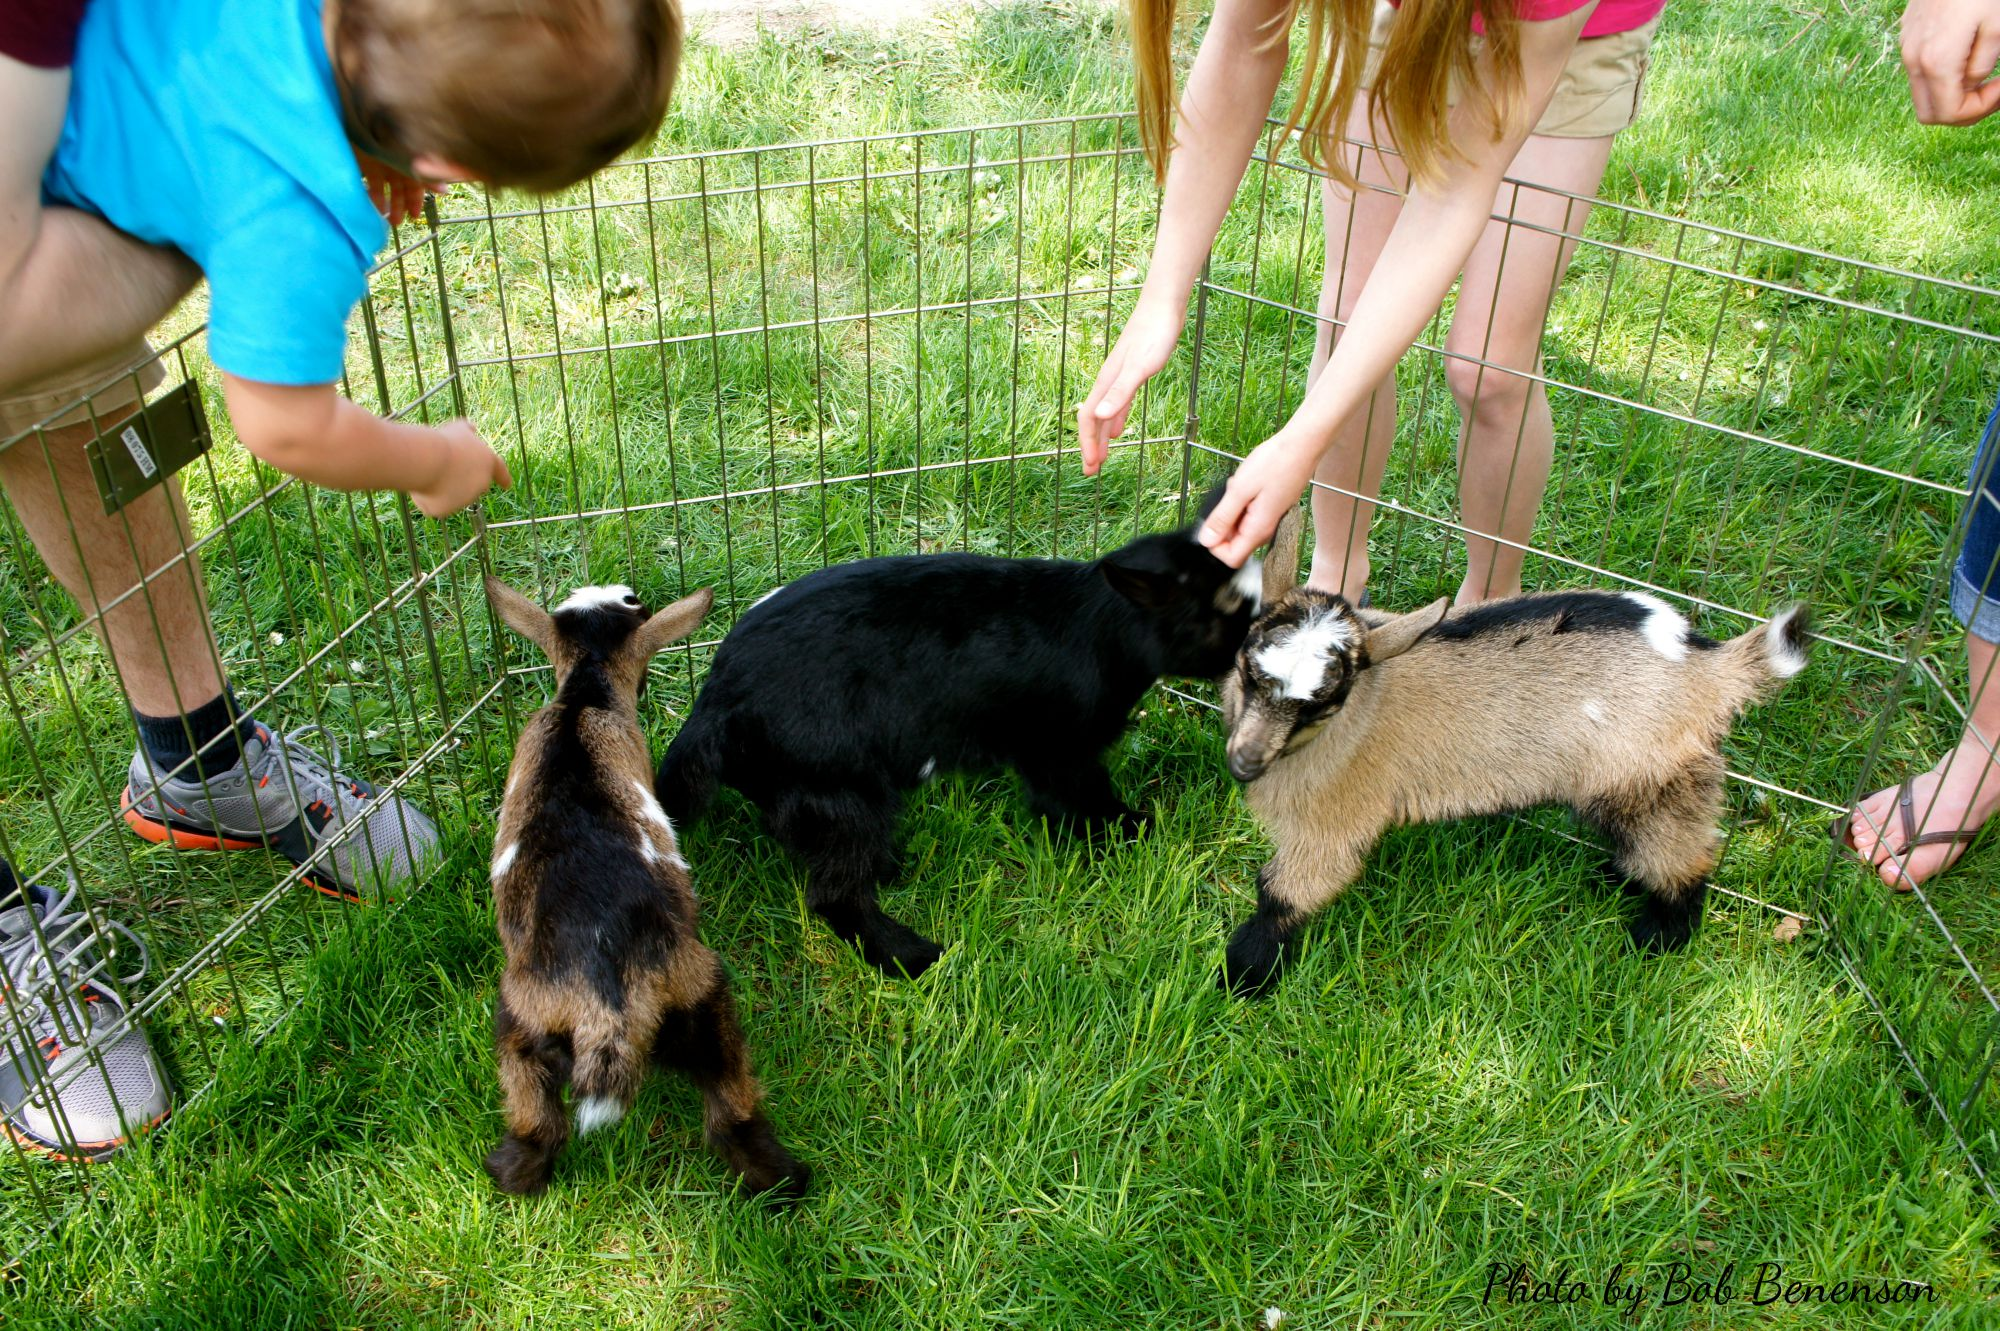 Baby goats at Prairie Crossing Farm in Grayslake, Ill.